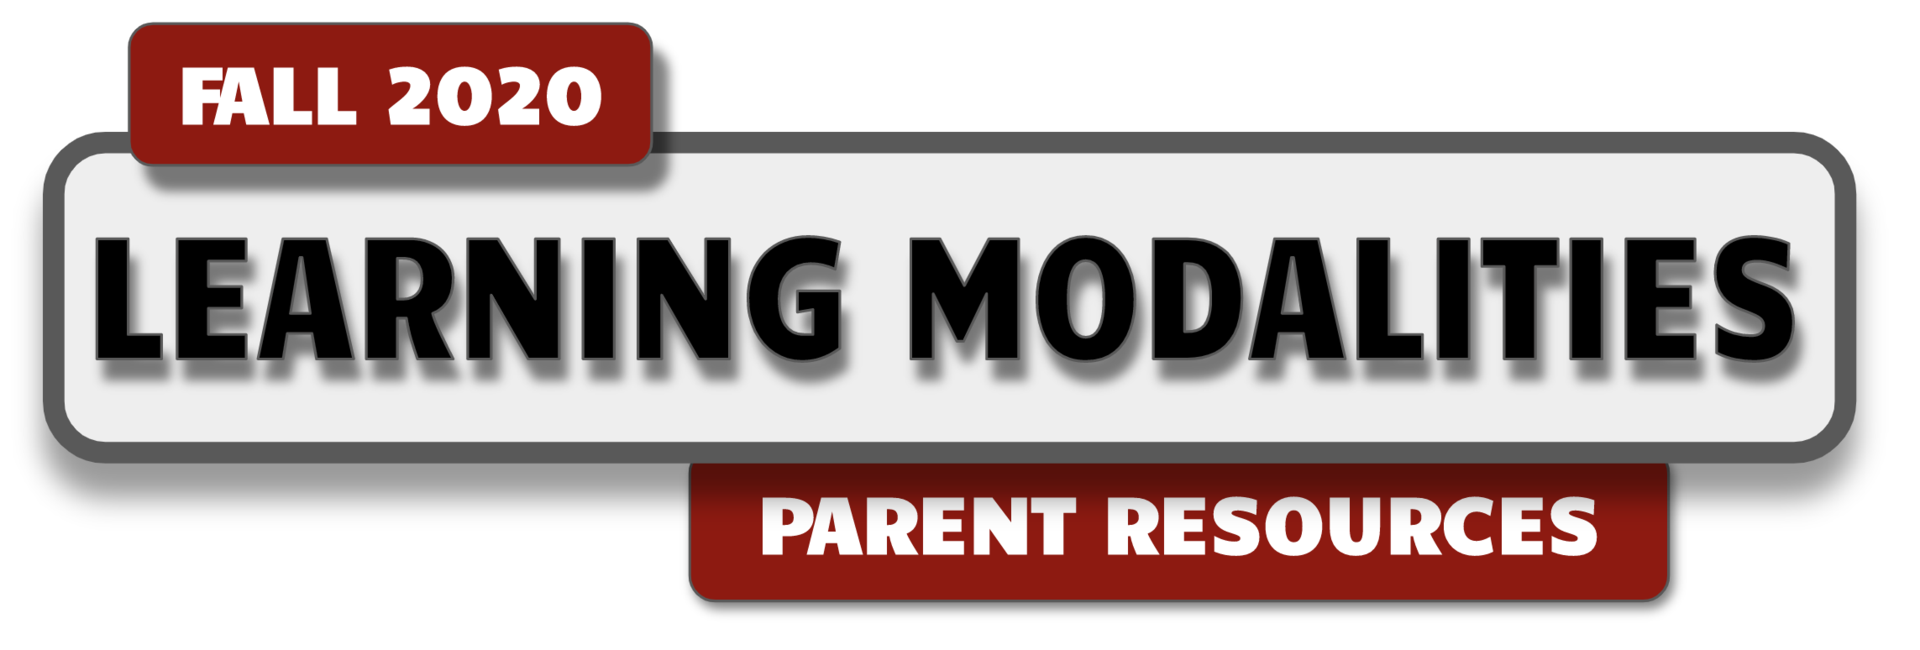 TITLE: FALL 2020, LEARNING MODALITIES - PARENT RESOURCE